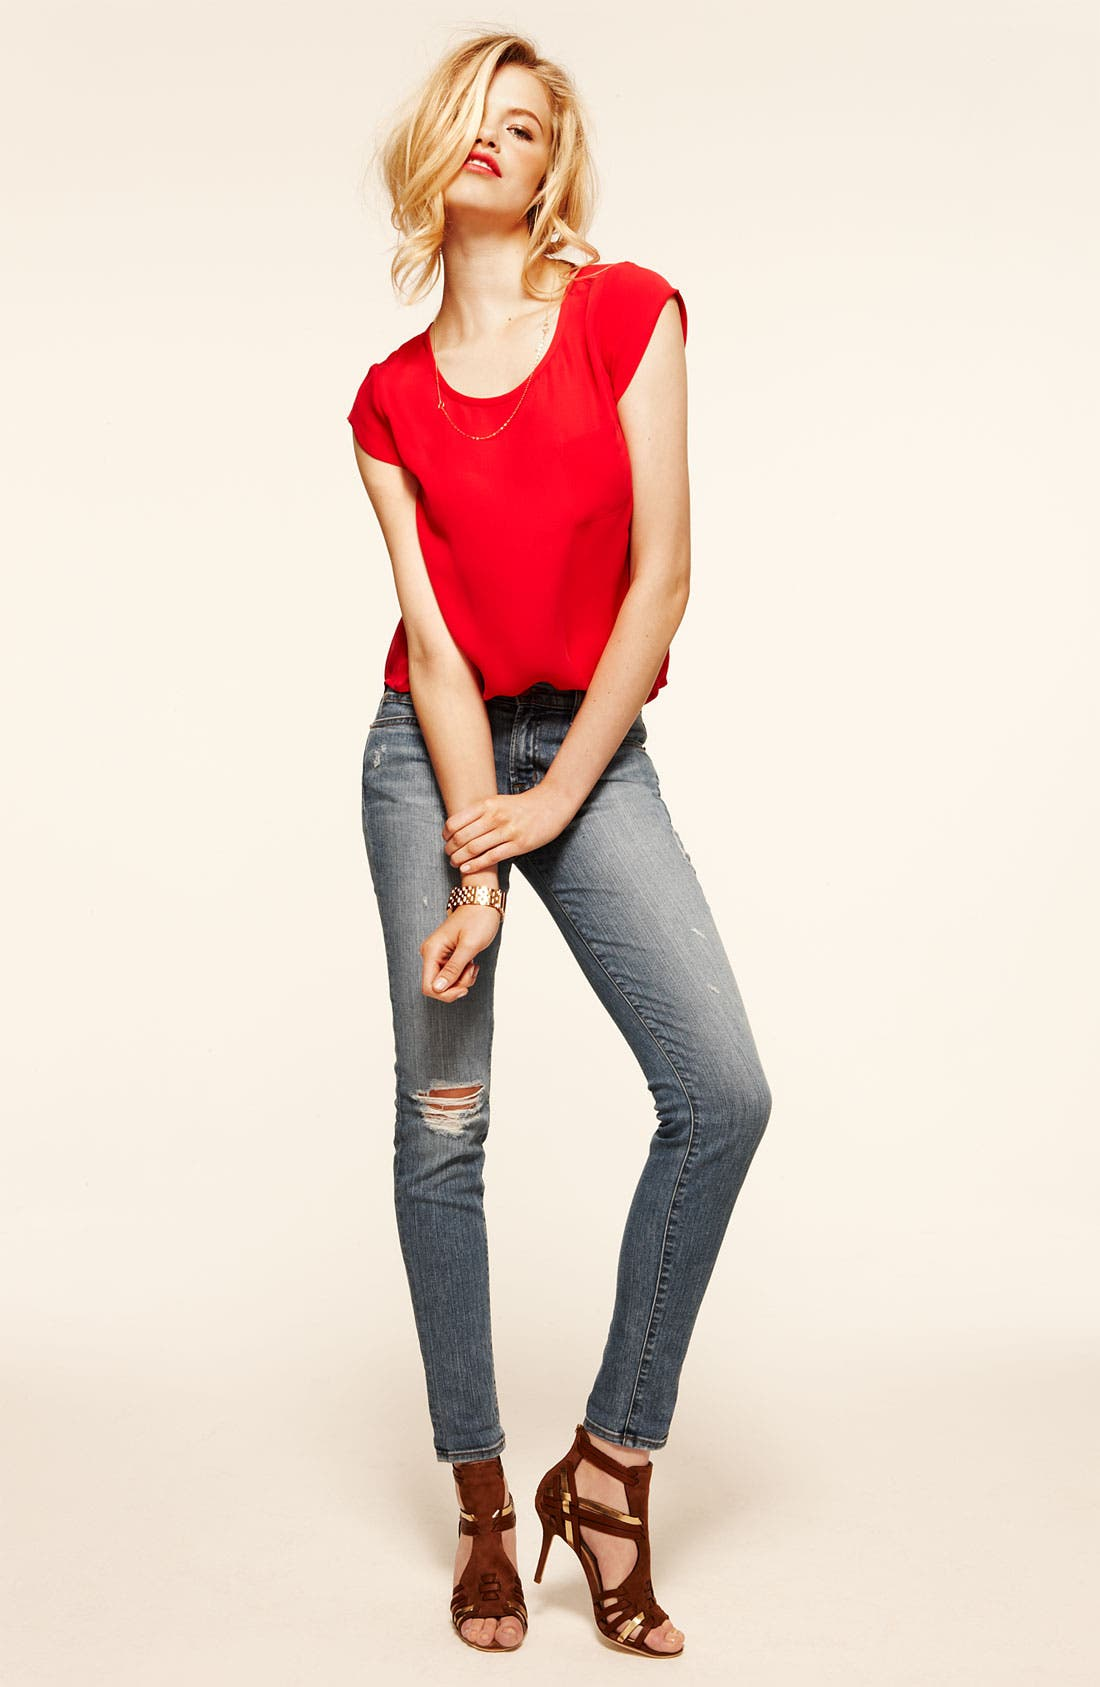 Main Image - Joie Top & J Brand Jeans